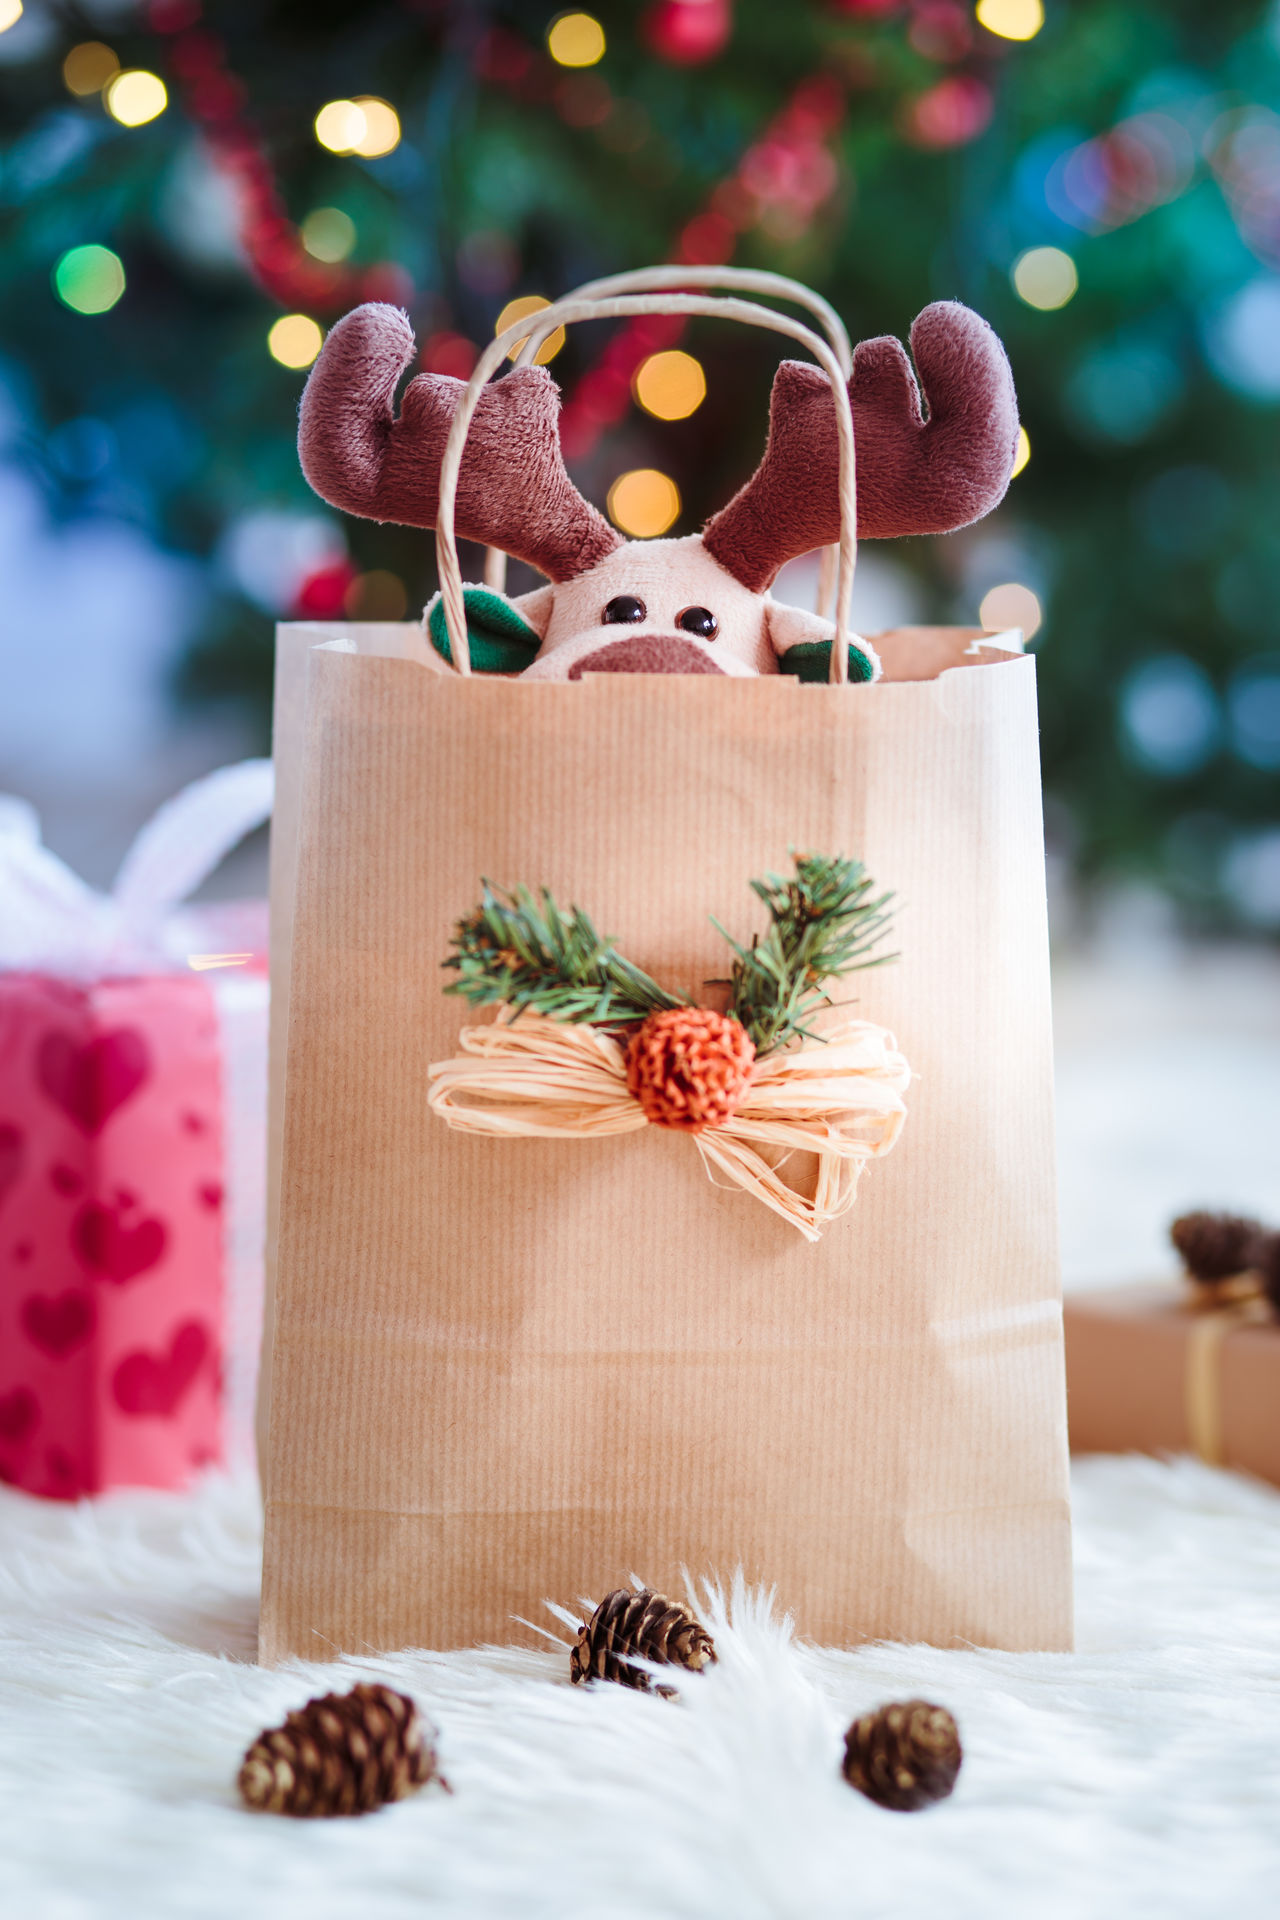 Reindeer toy in a paper bag for Christmas gift Bag Blur Blurred Celebrating Celebration Christmas Gift Holiday Holidays Indoors  Light Packed Paper Present Reindeer Season  Toy Tradional Tree